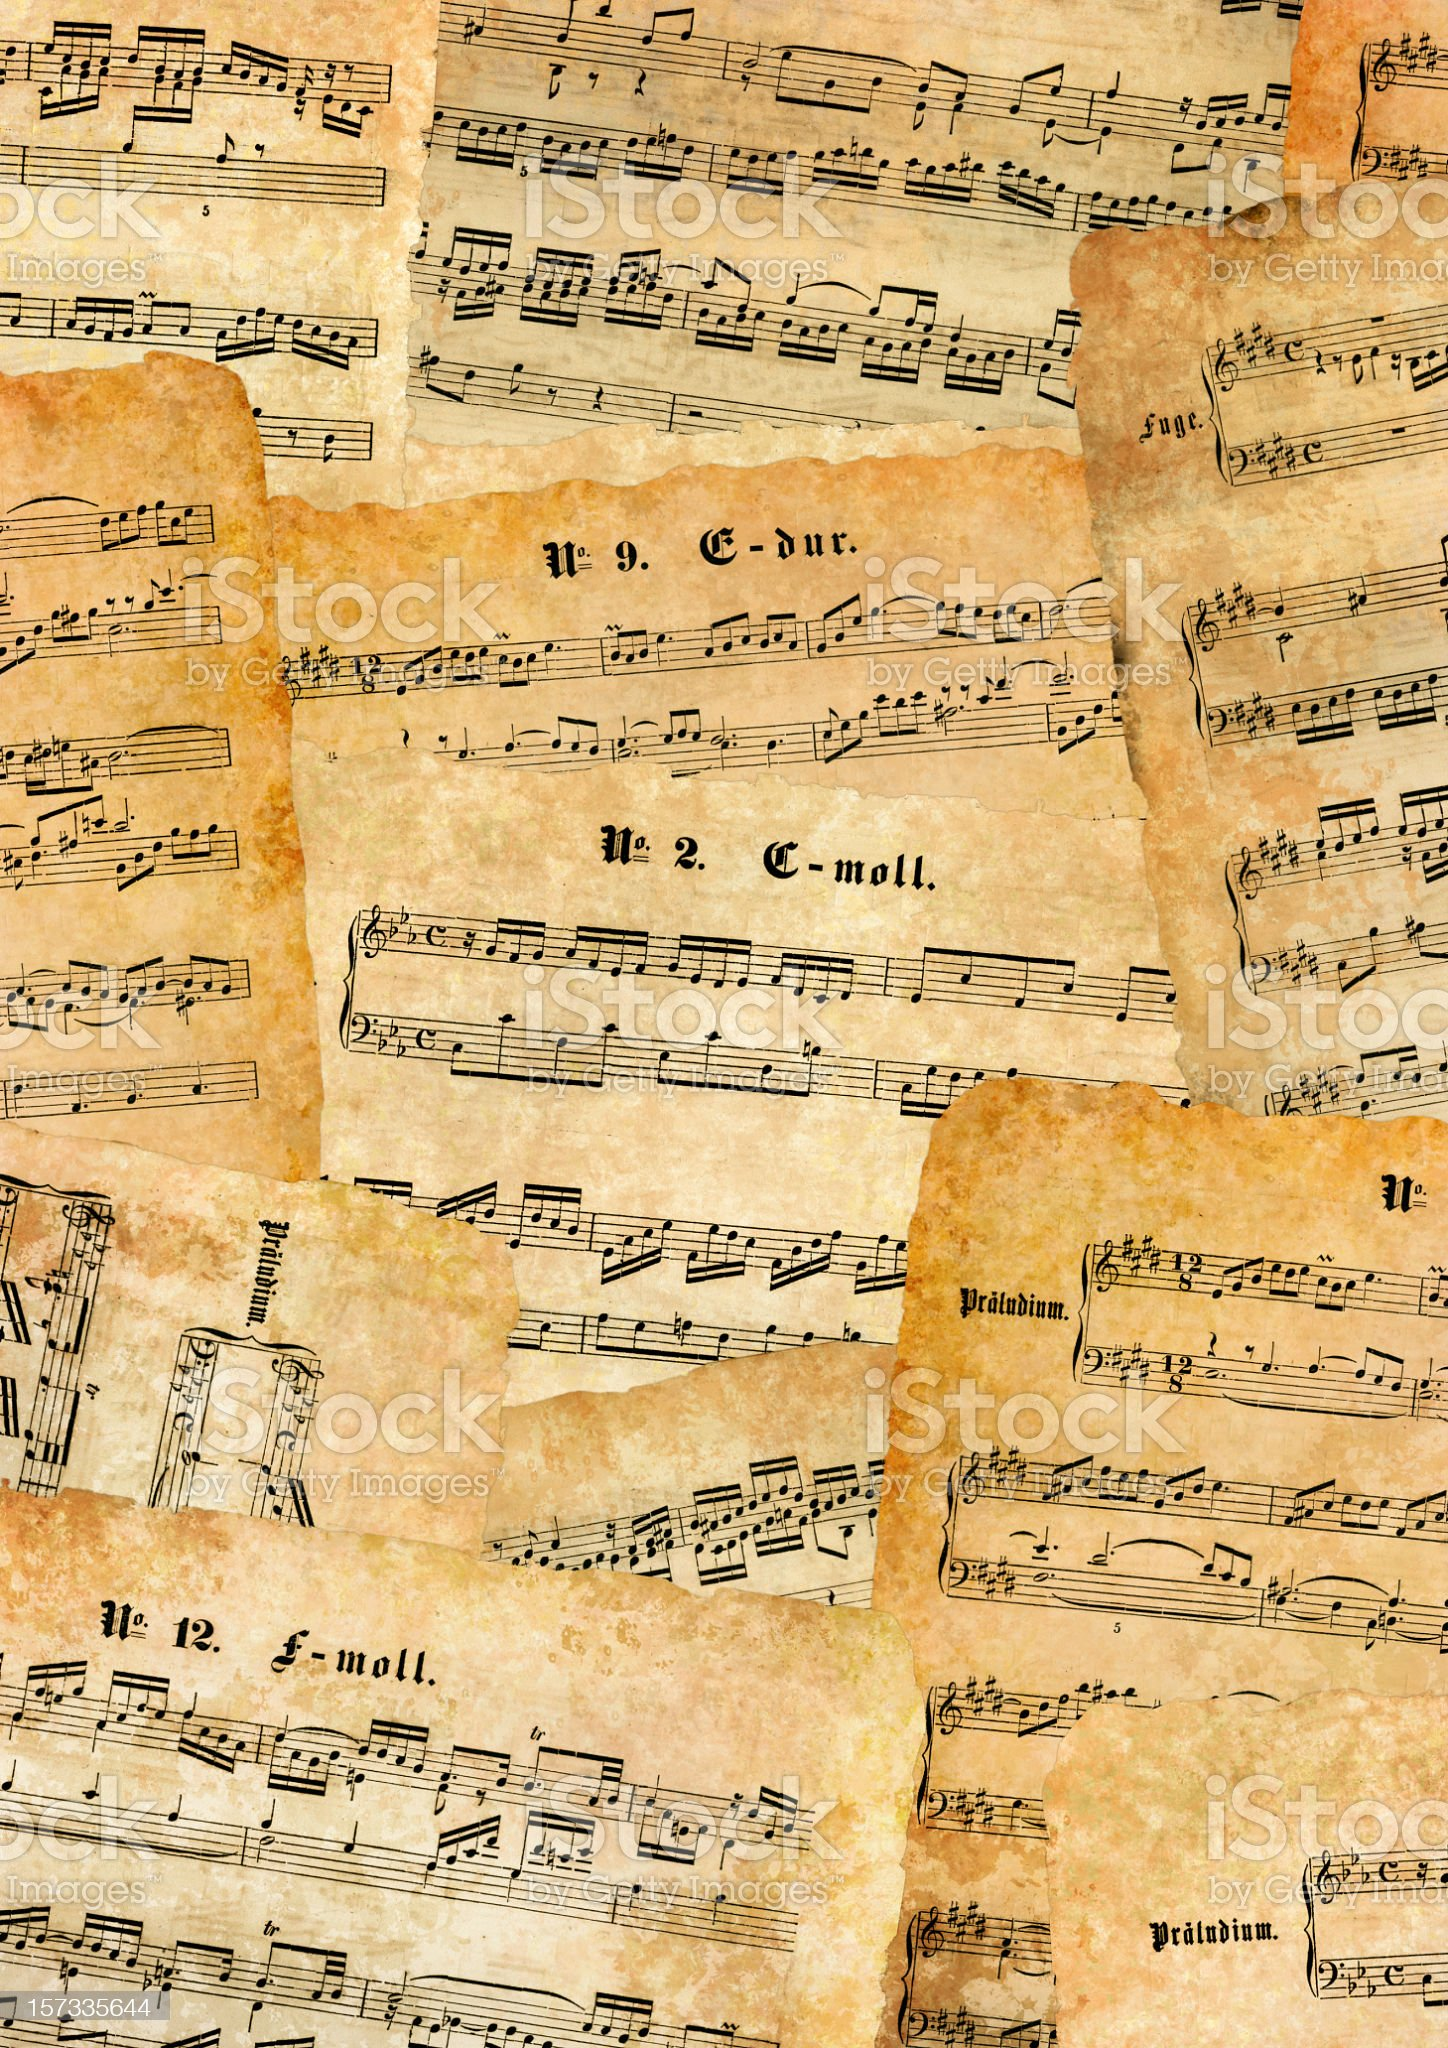 lot of old sheet music royalty-free stock photo